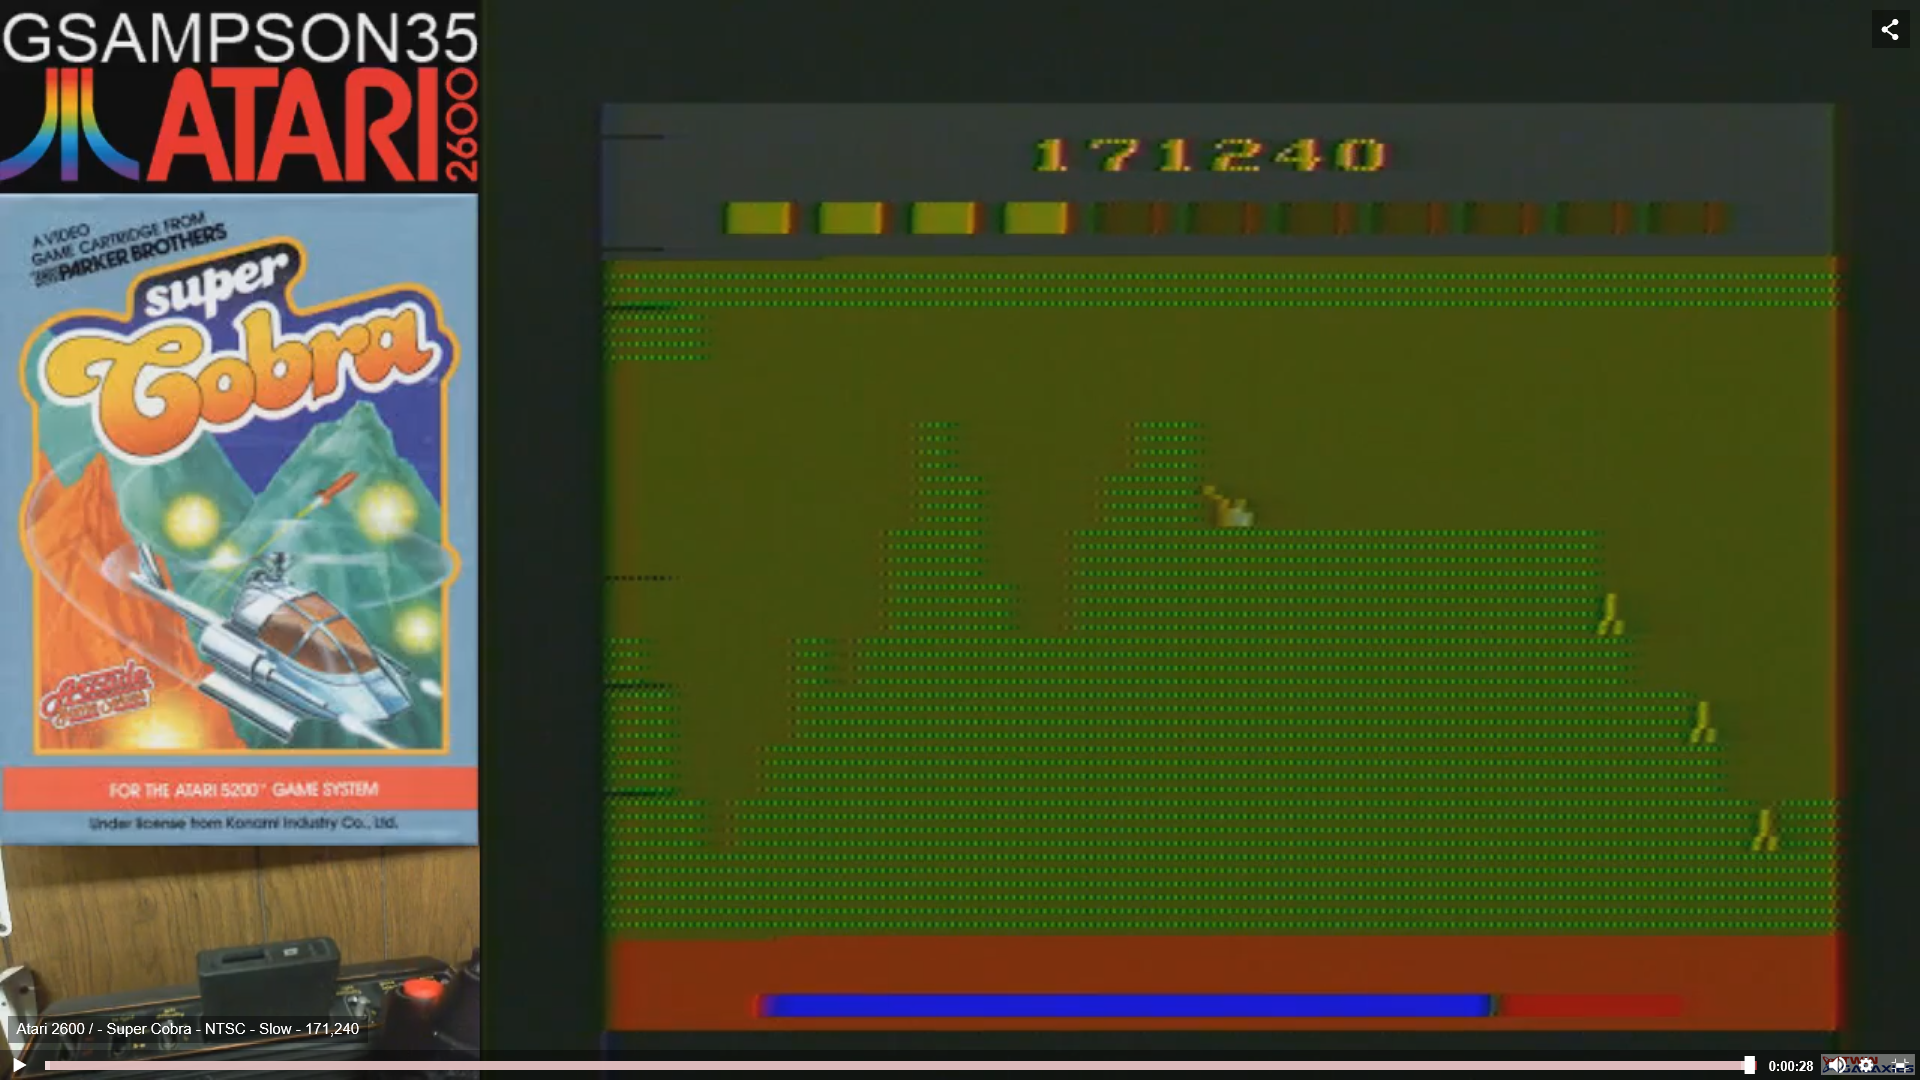 gsampson35: Super Cobra (Atari 2600 Novice/B) 171,240 points on 2019-02-10 04:31:48